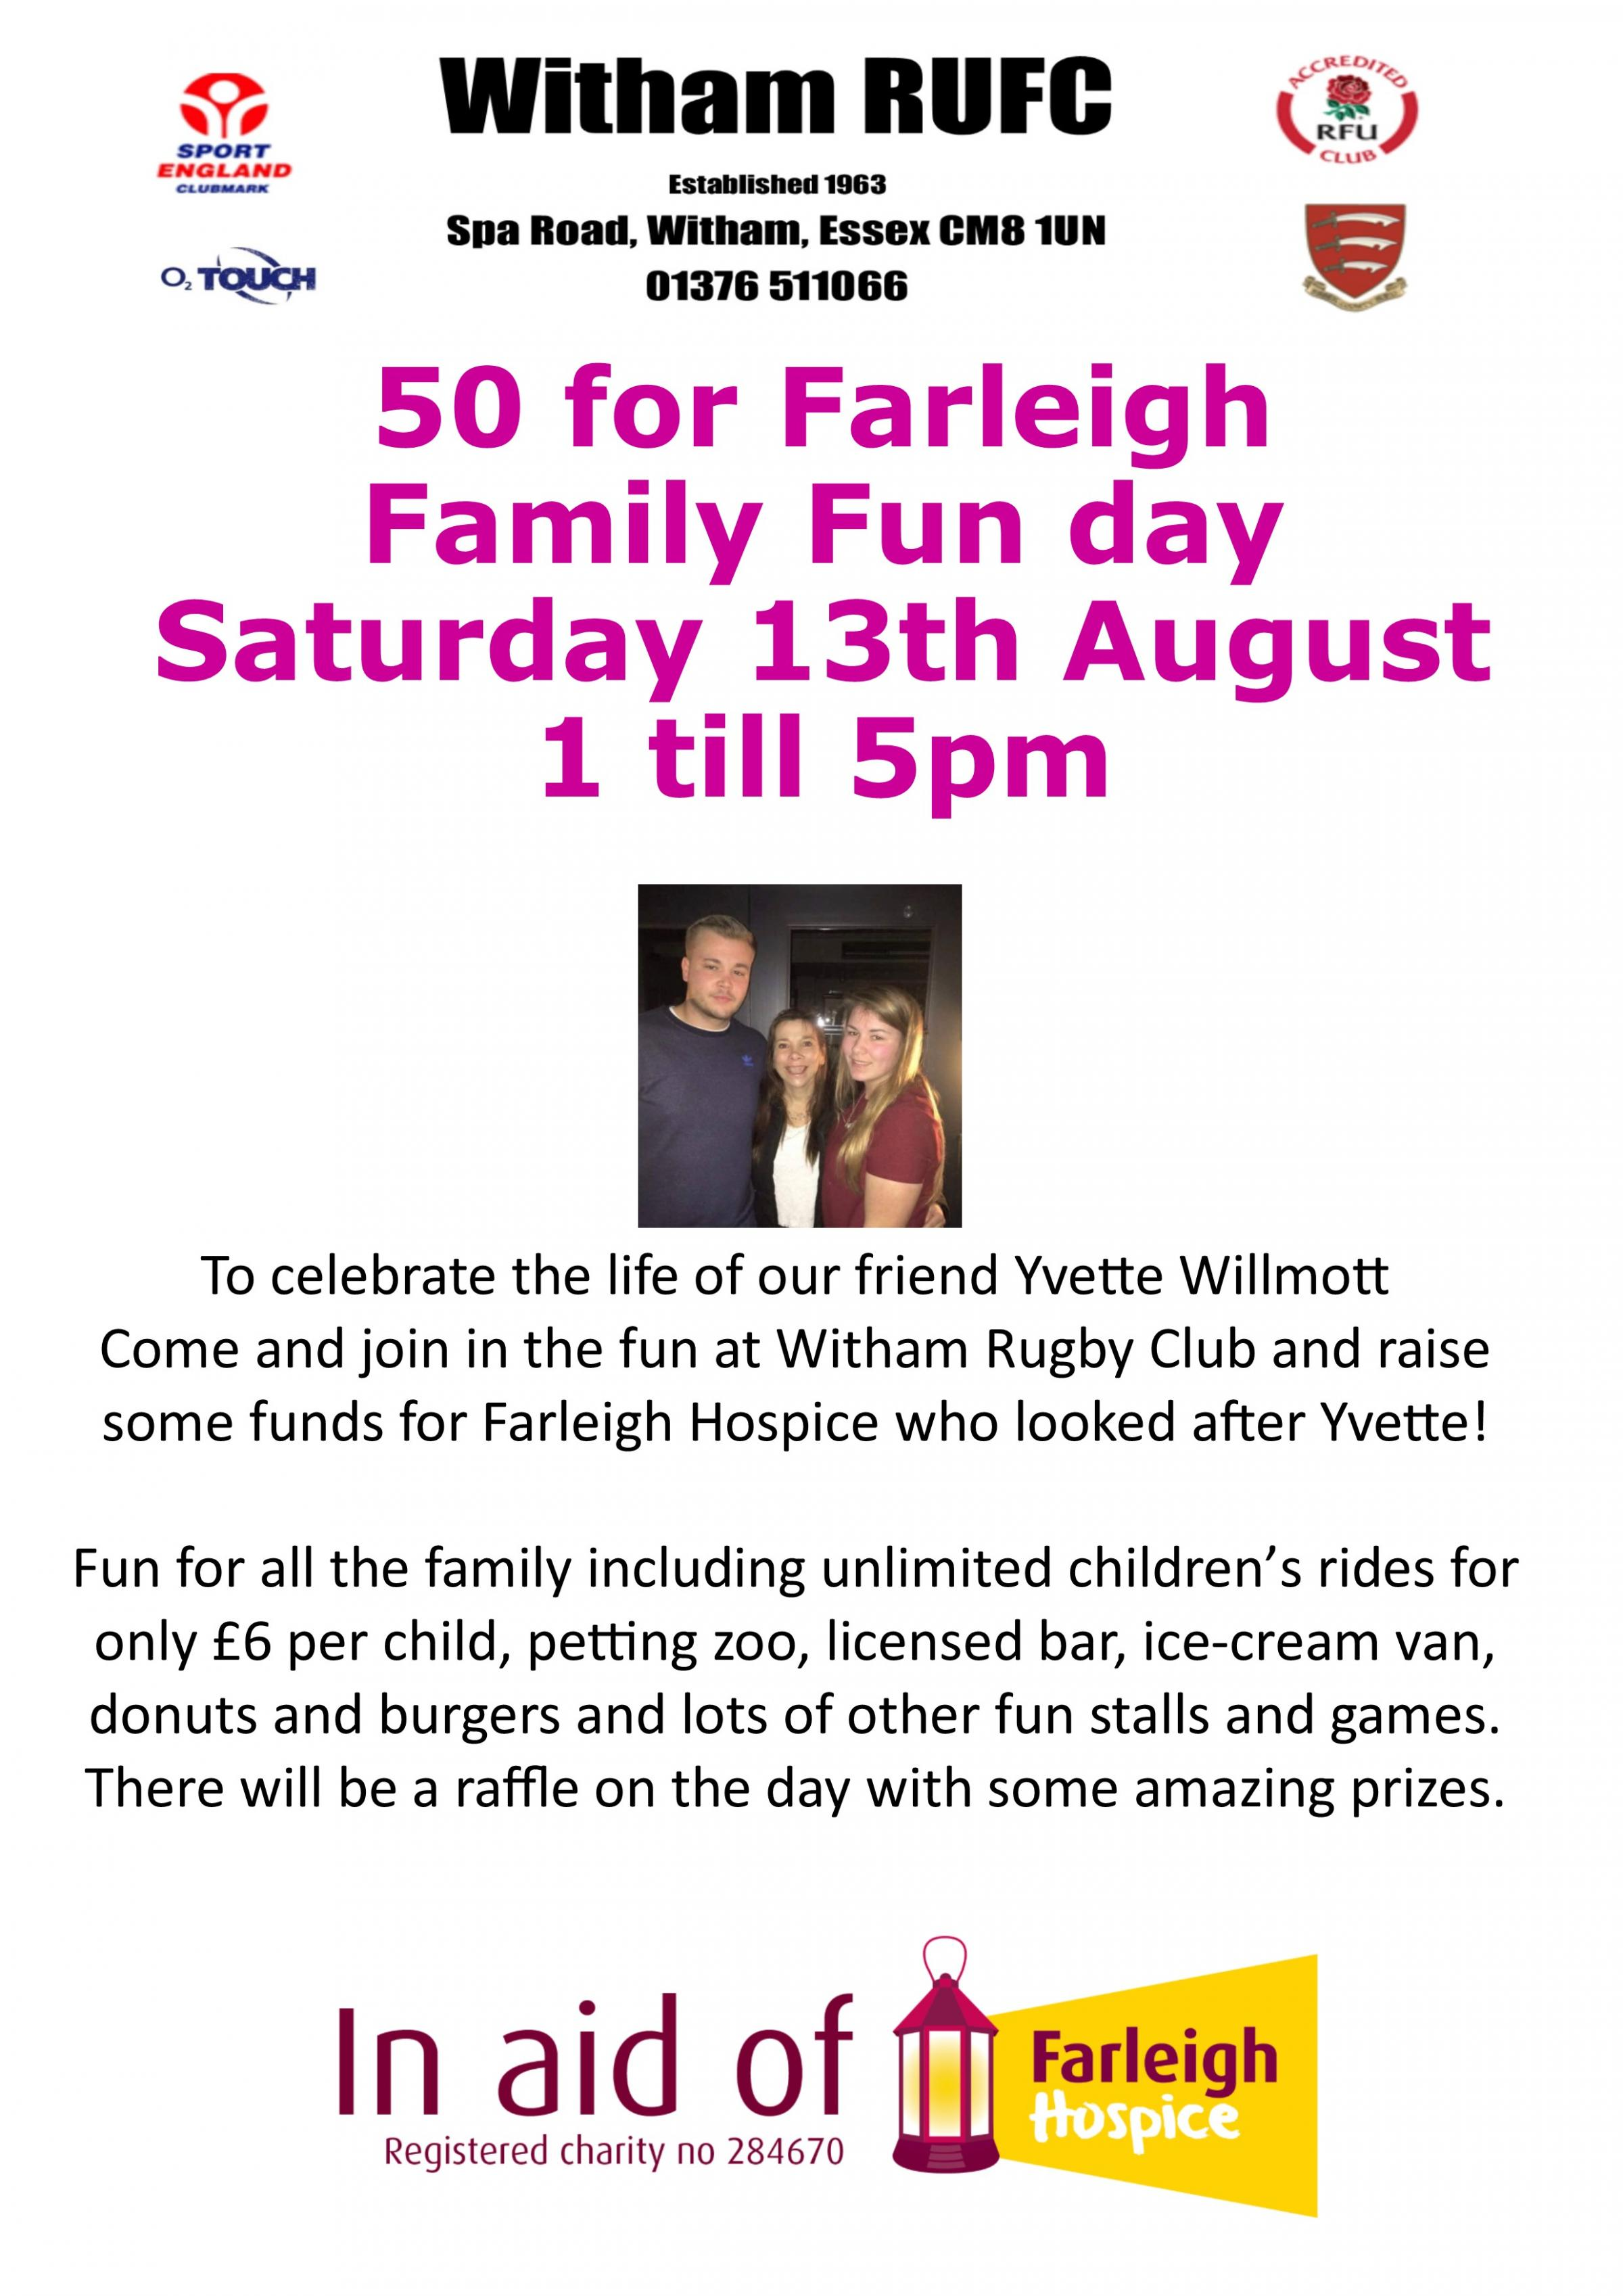 Family funday for Farleigh Hospice